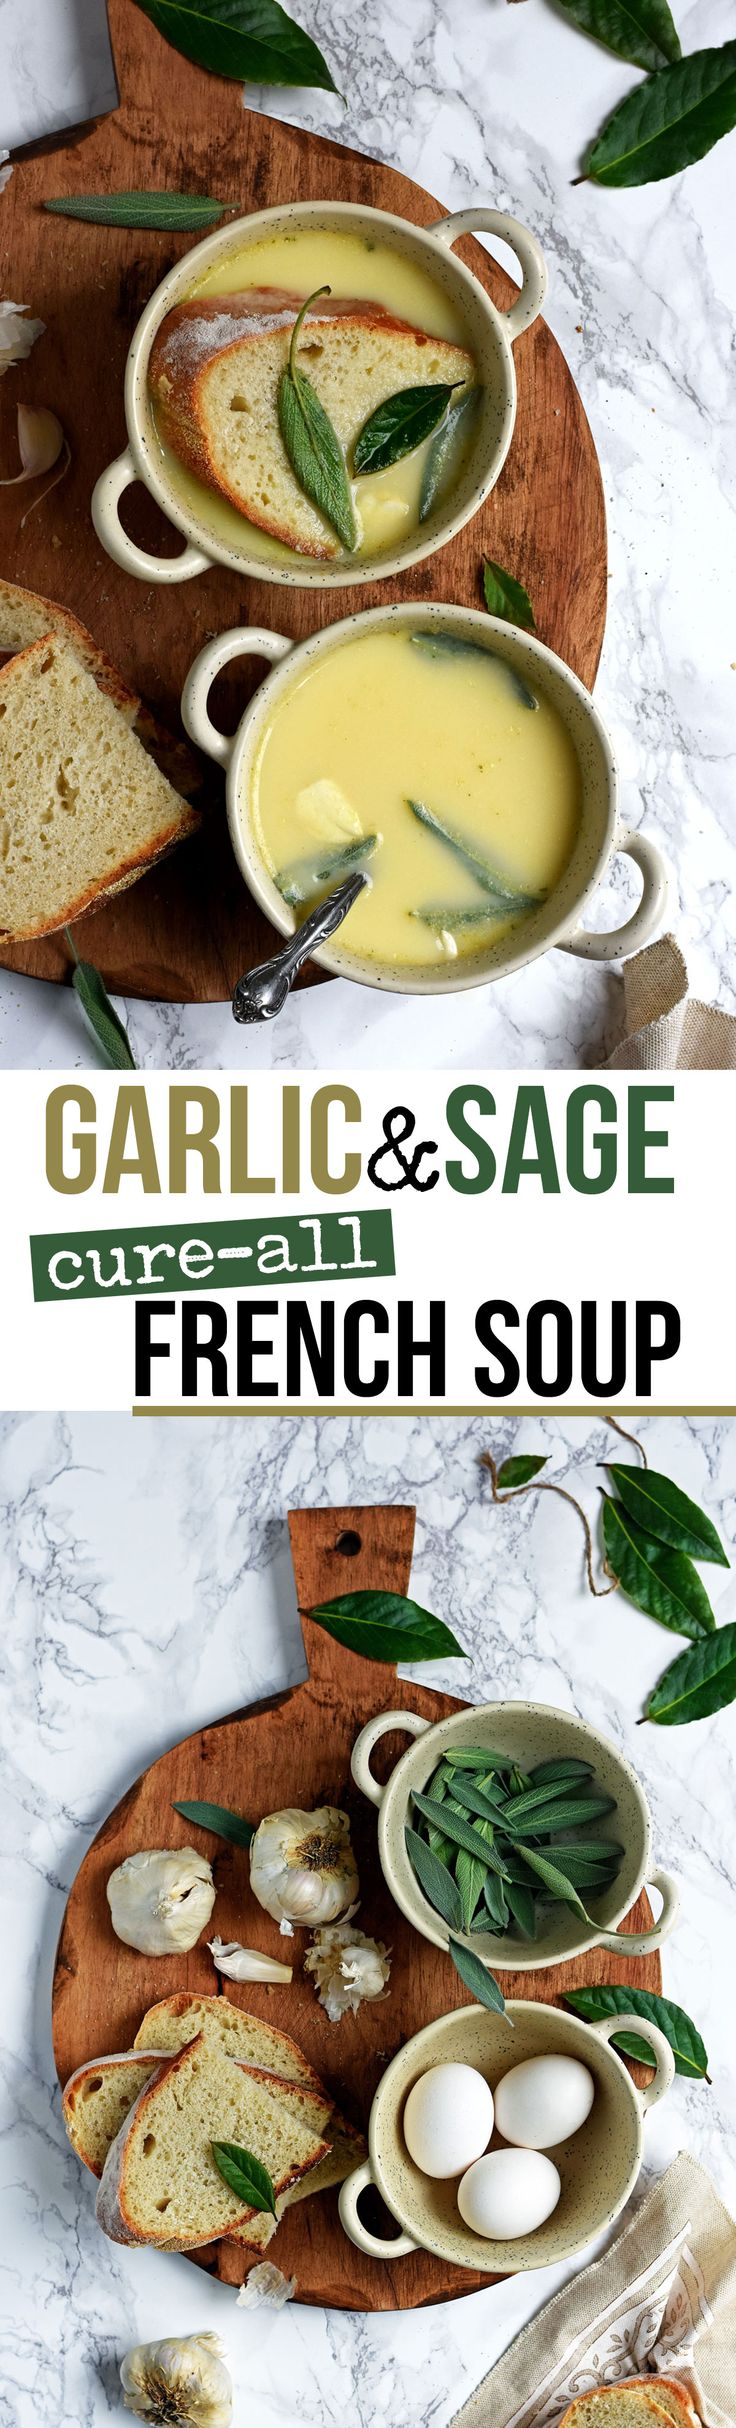 This delicate Garlic & Sage soup is widely consumed in the South of France to ward off winter ills, or as a detox soup after days of feasting (and a good cure for hangovers too!).